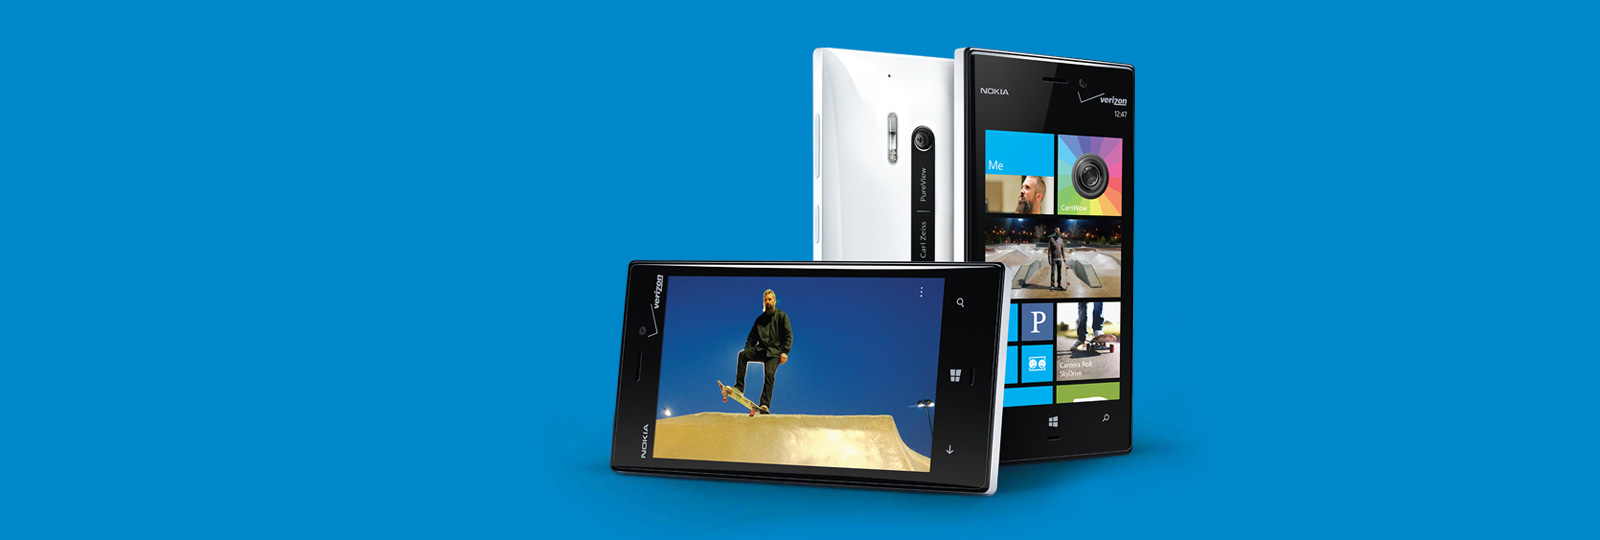 Get the Windows Phone with the best low-light camera available.